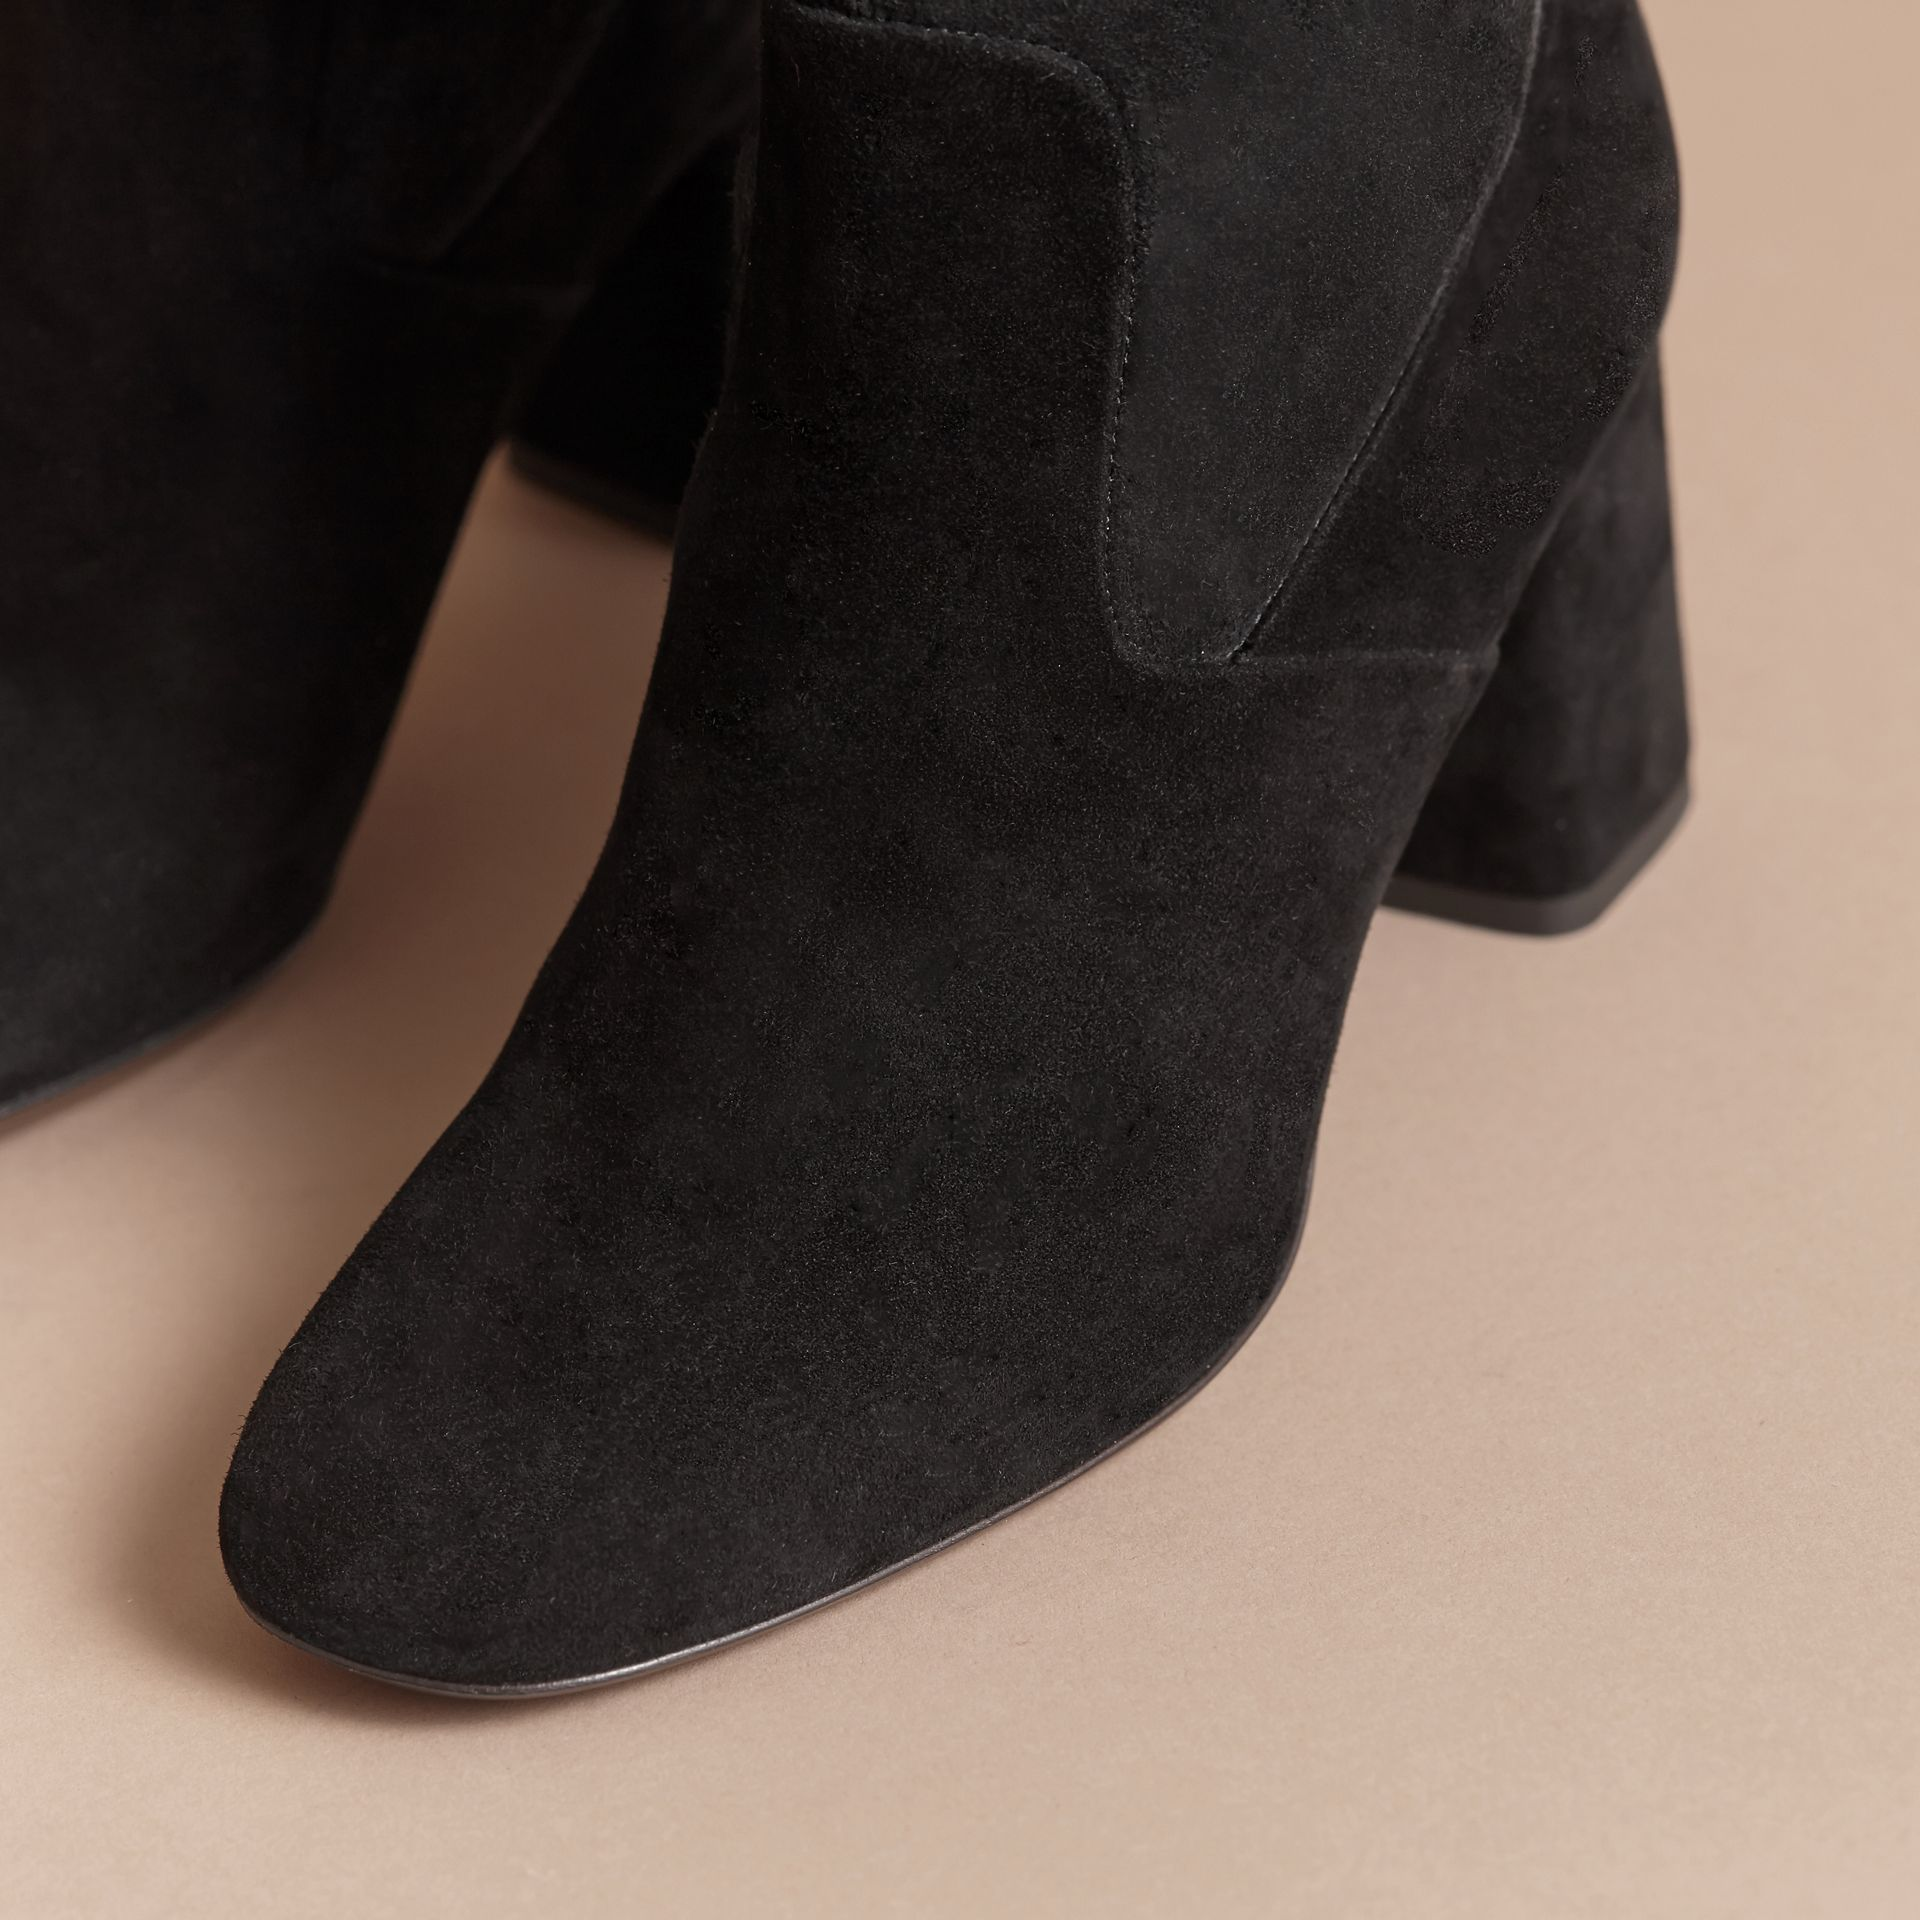 Buckle Detail Kidskin Boots in Black - Women | Burberry - gallery image 5